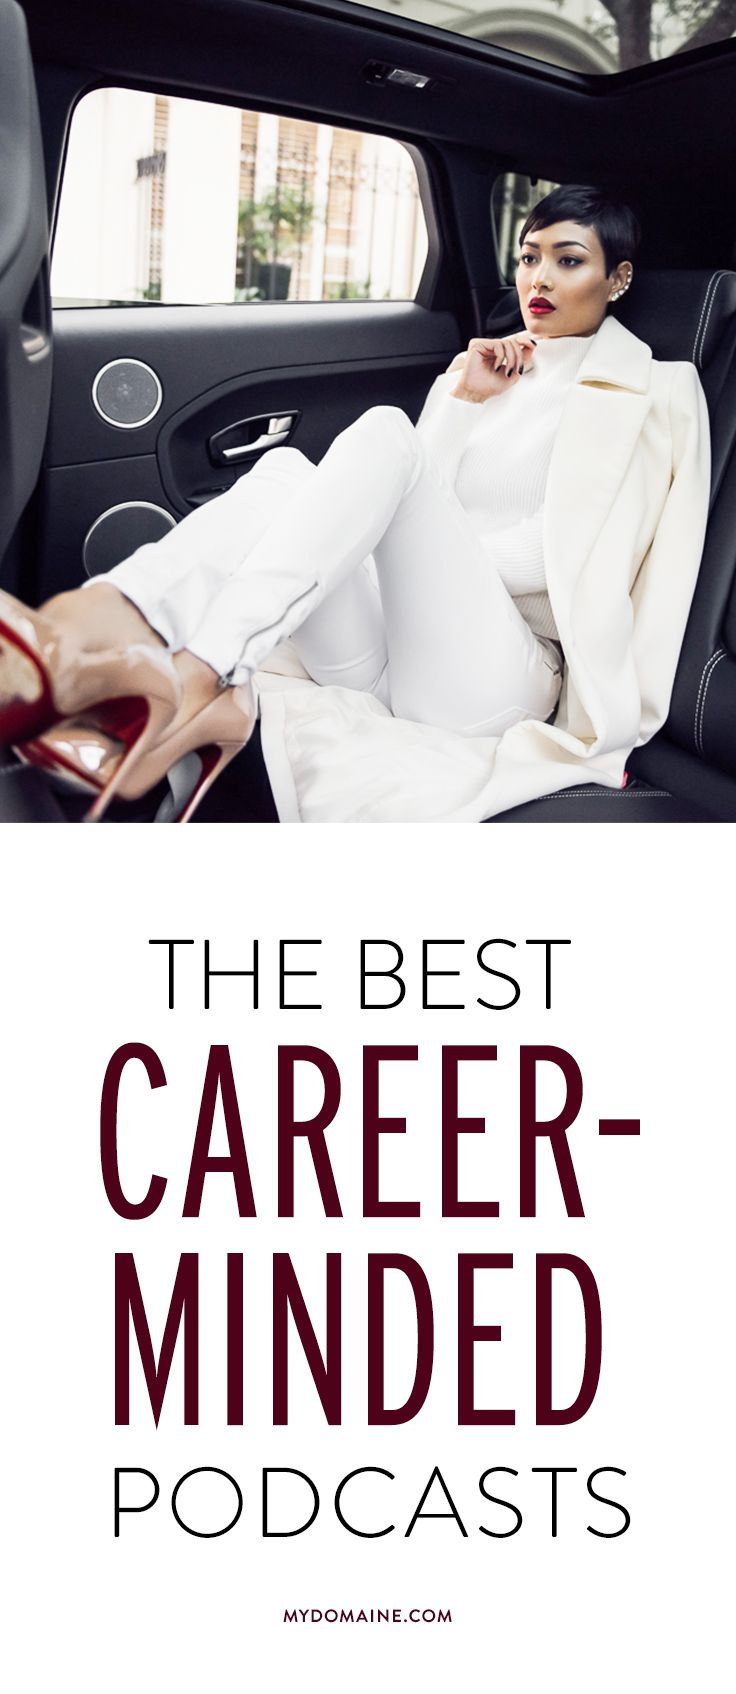 Podcasts that will boost your career